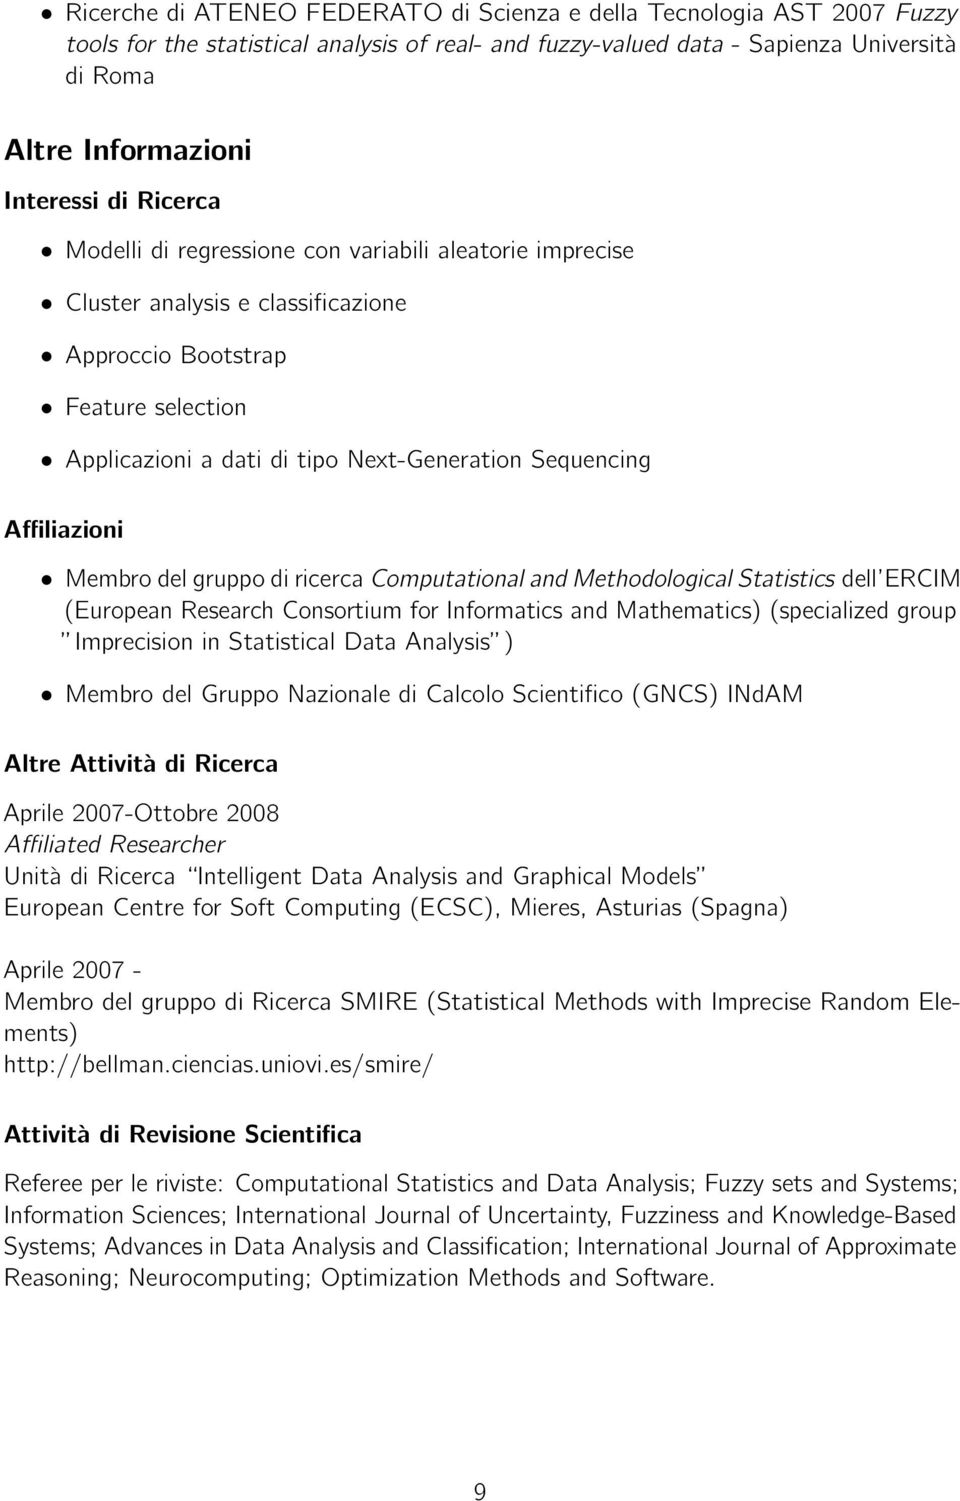 Affiliazioni Membro del gruppo di ricerca Computational and Methodological Statistics dell ERCIM (European Research Consortium for Informatics and Mathematics) (specialized group Imprecision in